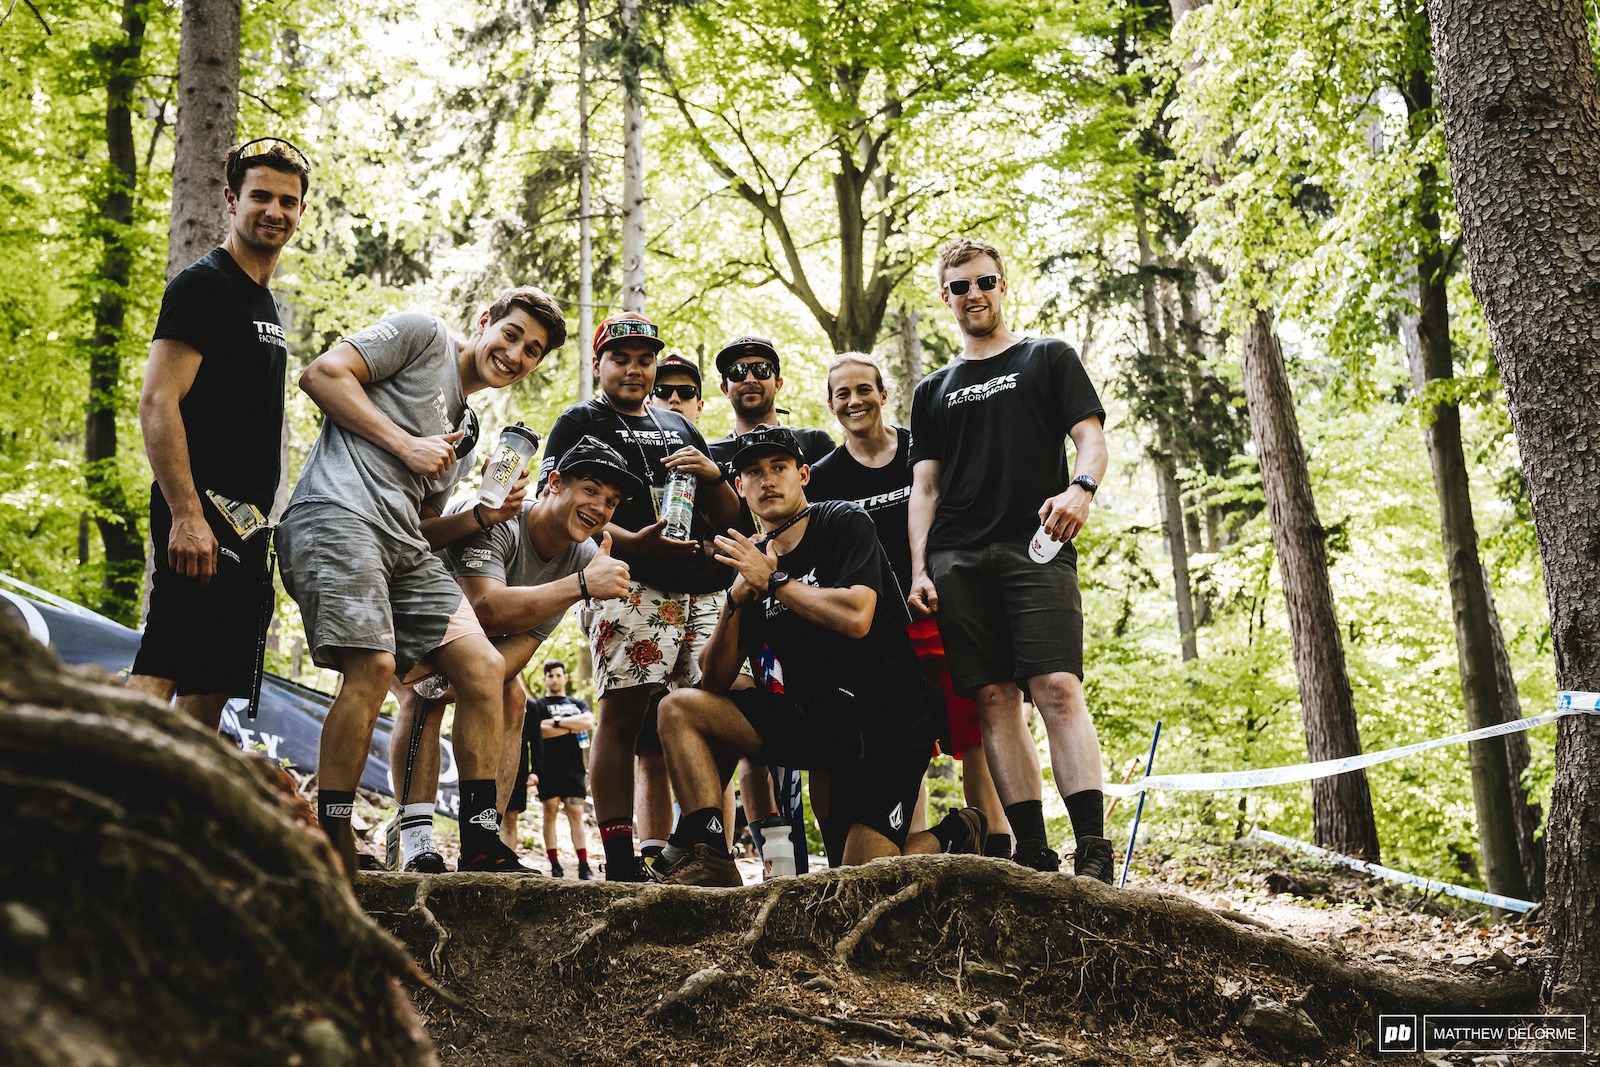 The newly formed Trek Factory Racing team. Fresh faces and big plans were in the works for this crew.